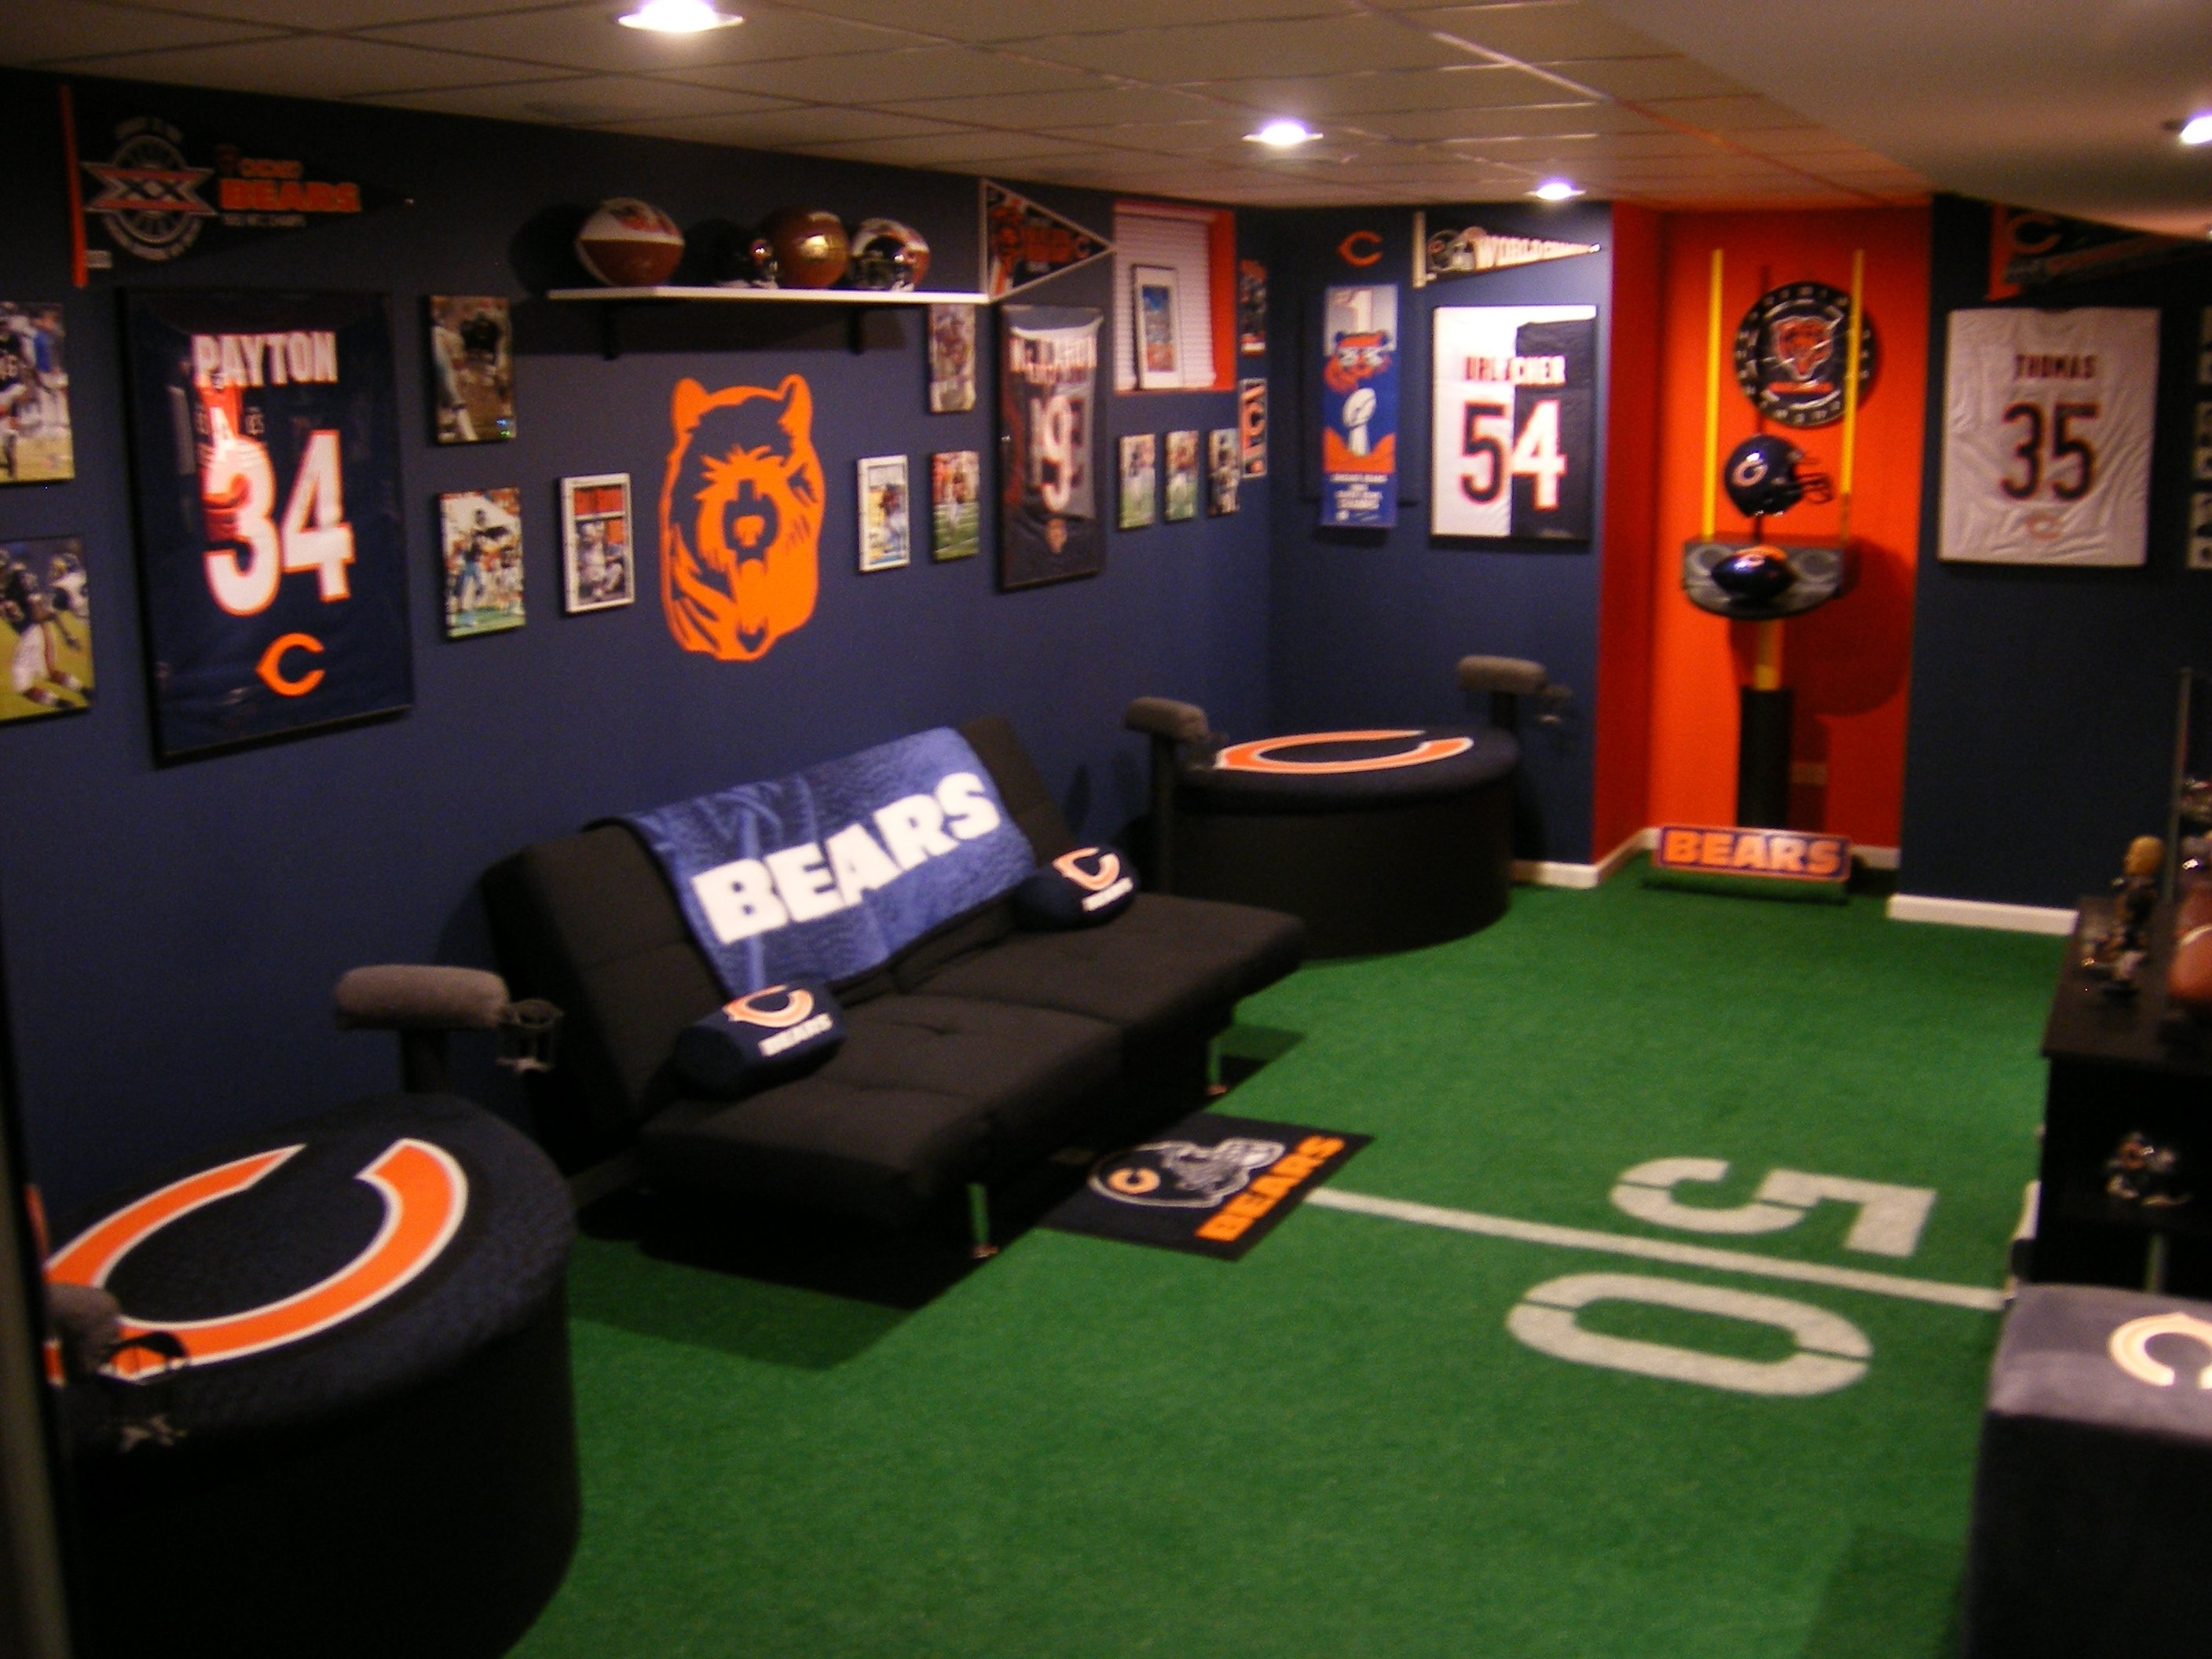 10 Perfect Man Cave Ideas For A Small Room perfect small man cave ideas bedroom 100 unbelievable photos design 2021